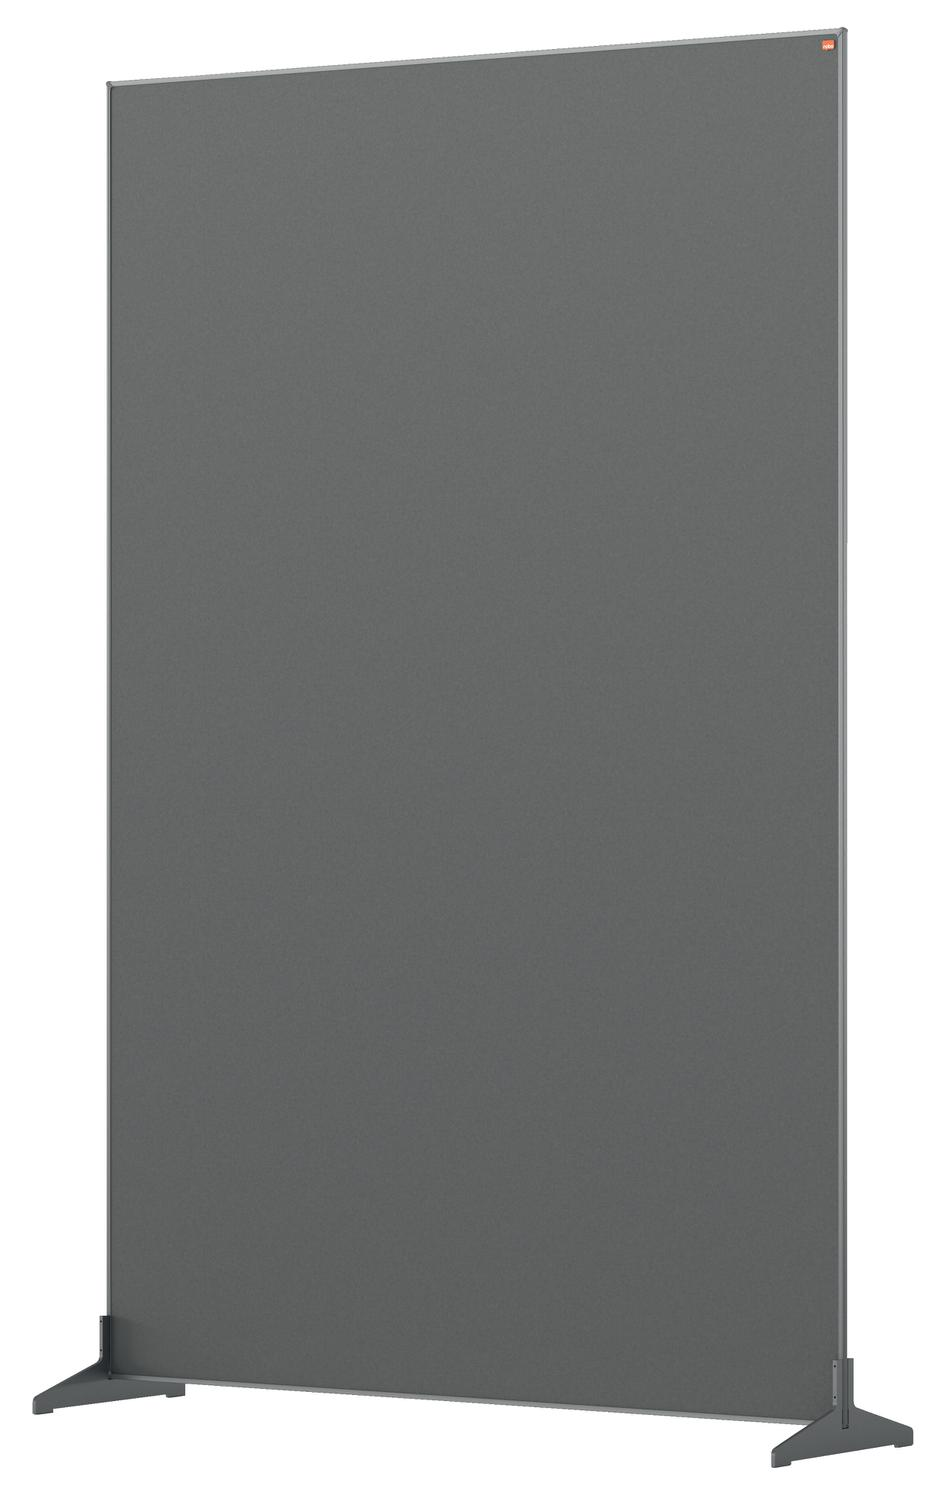 Straight Tops Nobo Impression Pro Floor Divider 1200x1800mm Grey